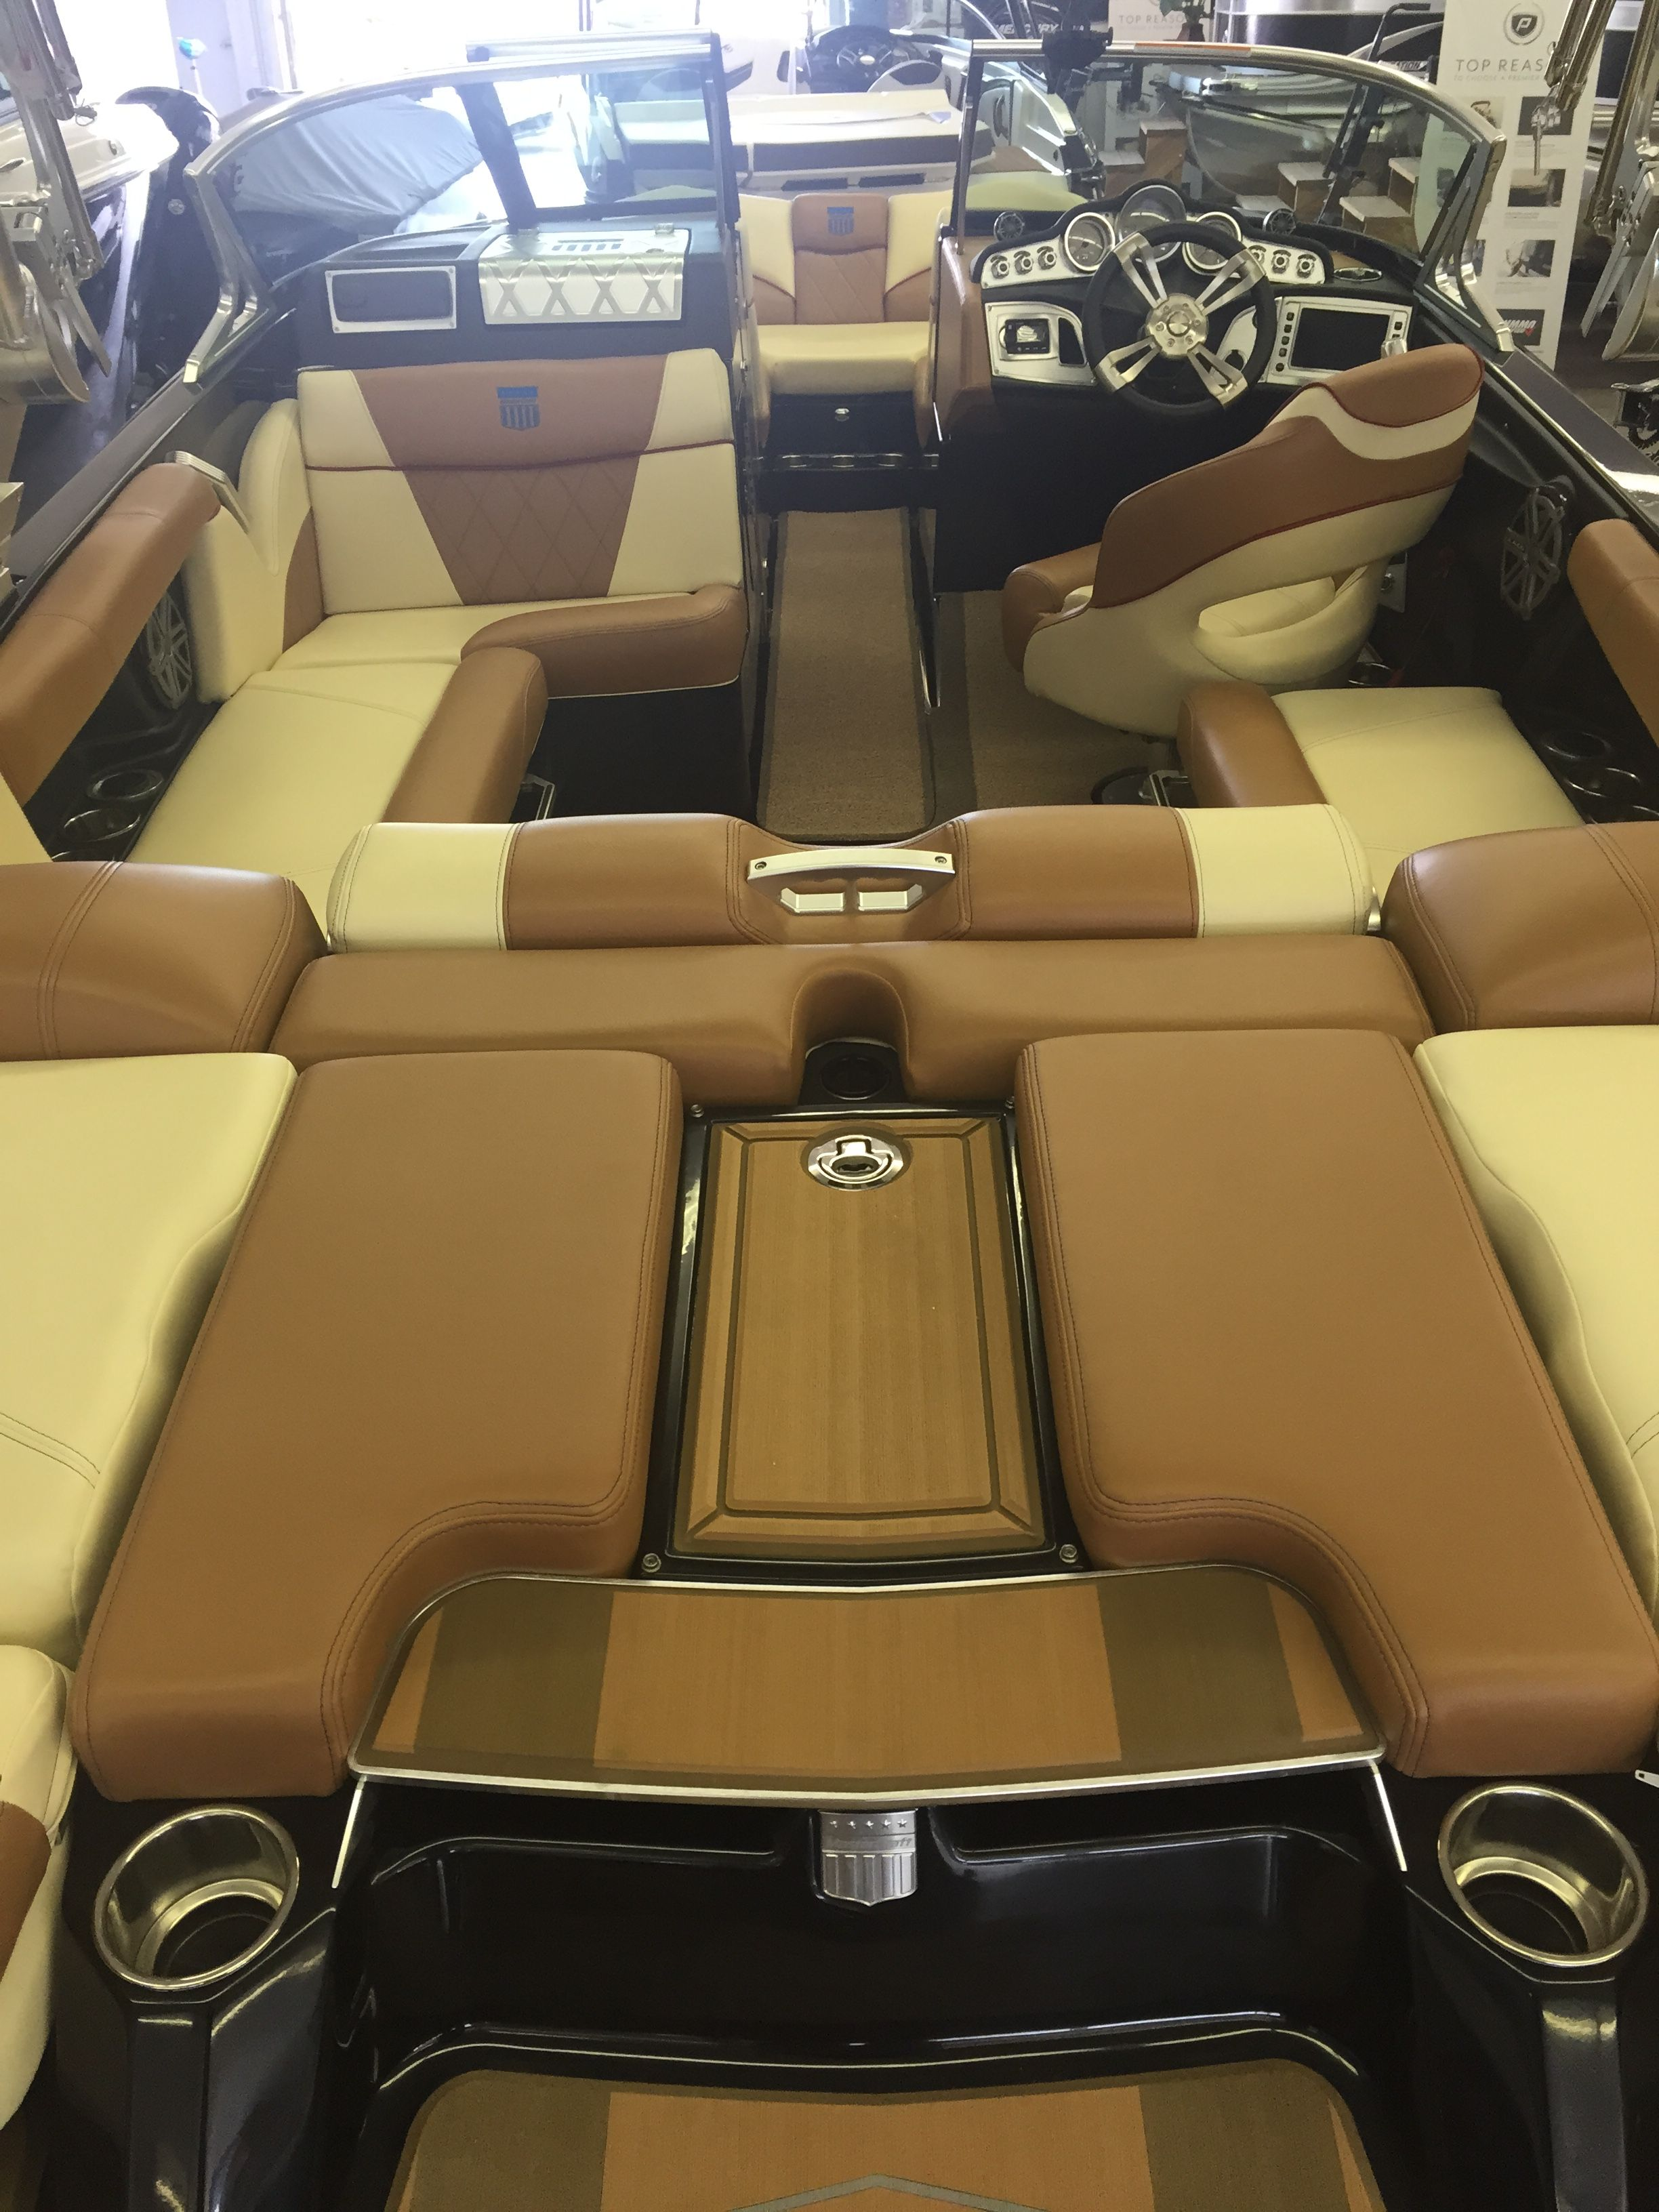 2015 mastercraft x 20 surf edition interior view mastercraft